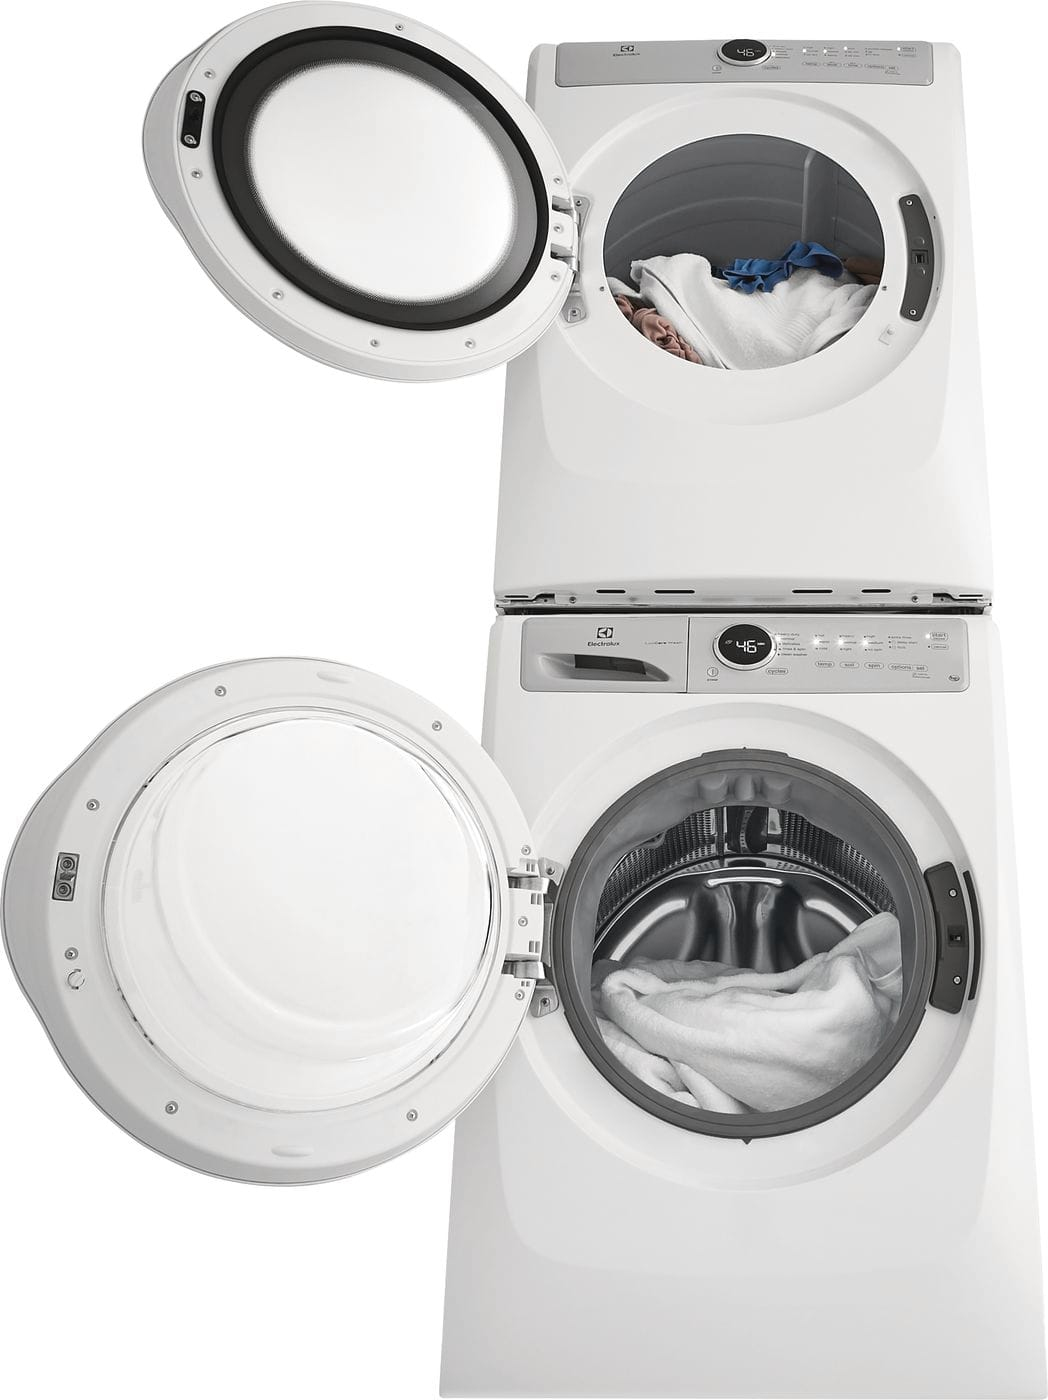 Model: EFDG317TIW | Electrolux Front Load Gas Dryer with 5 cycles - 8.0 Cu. Ft.